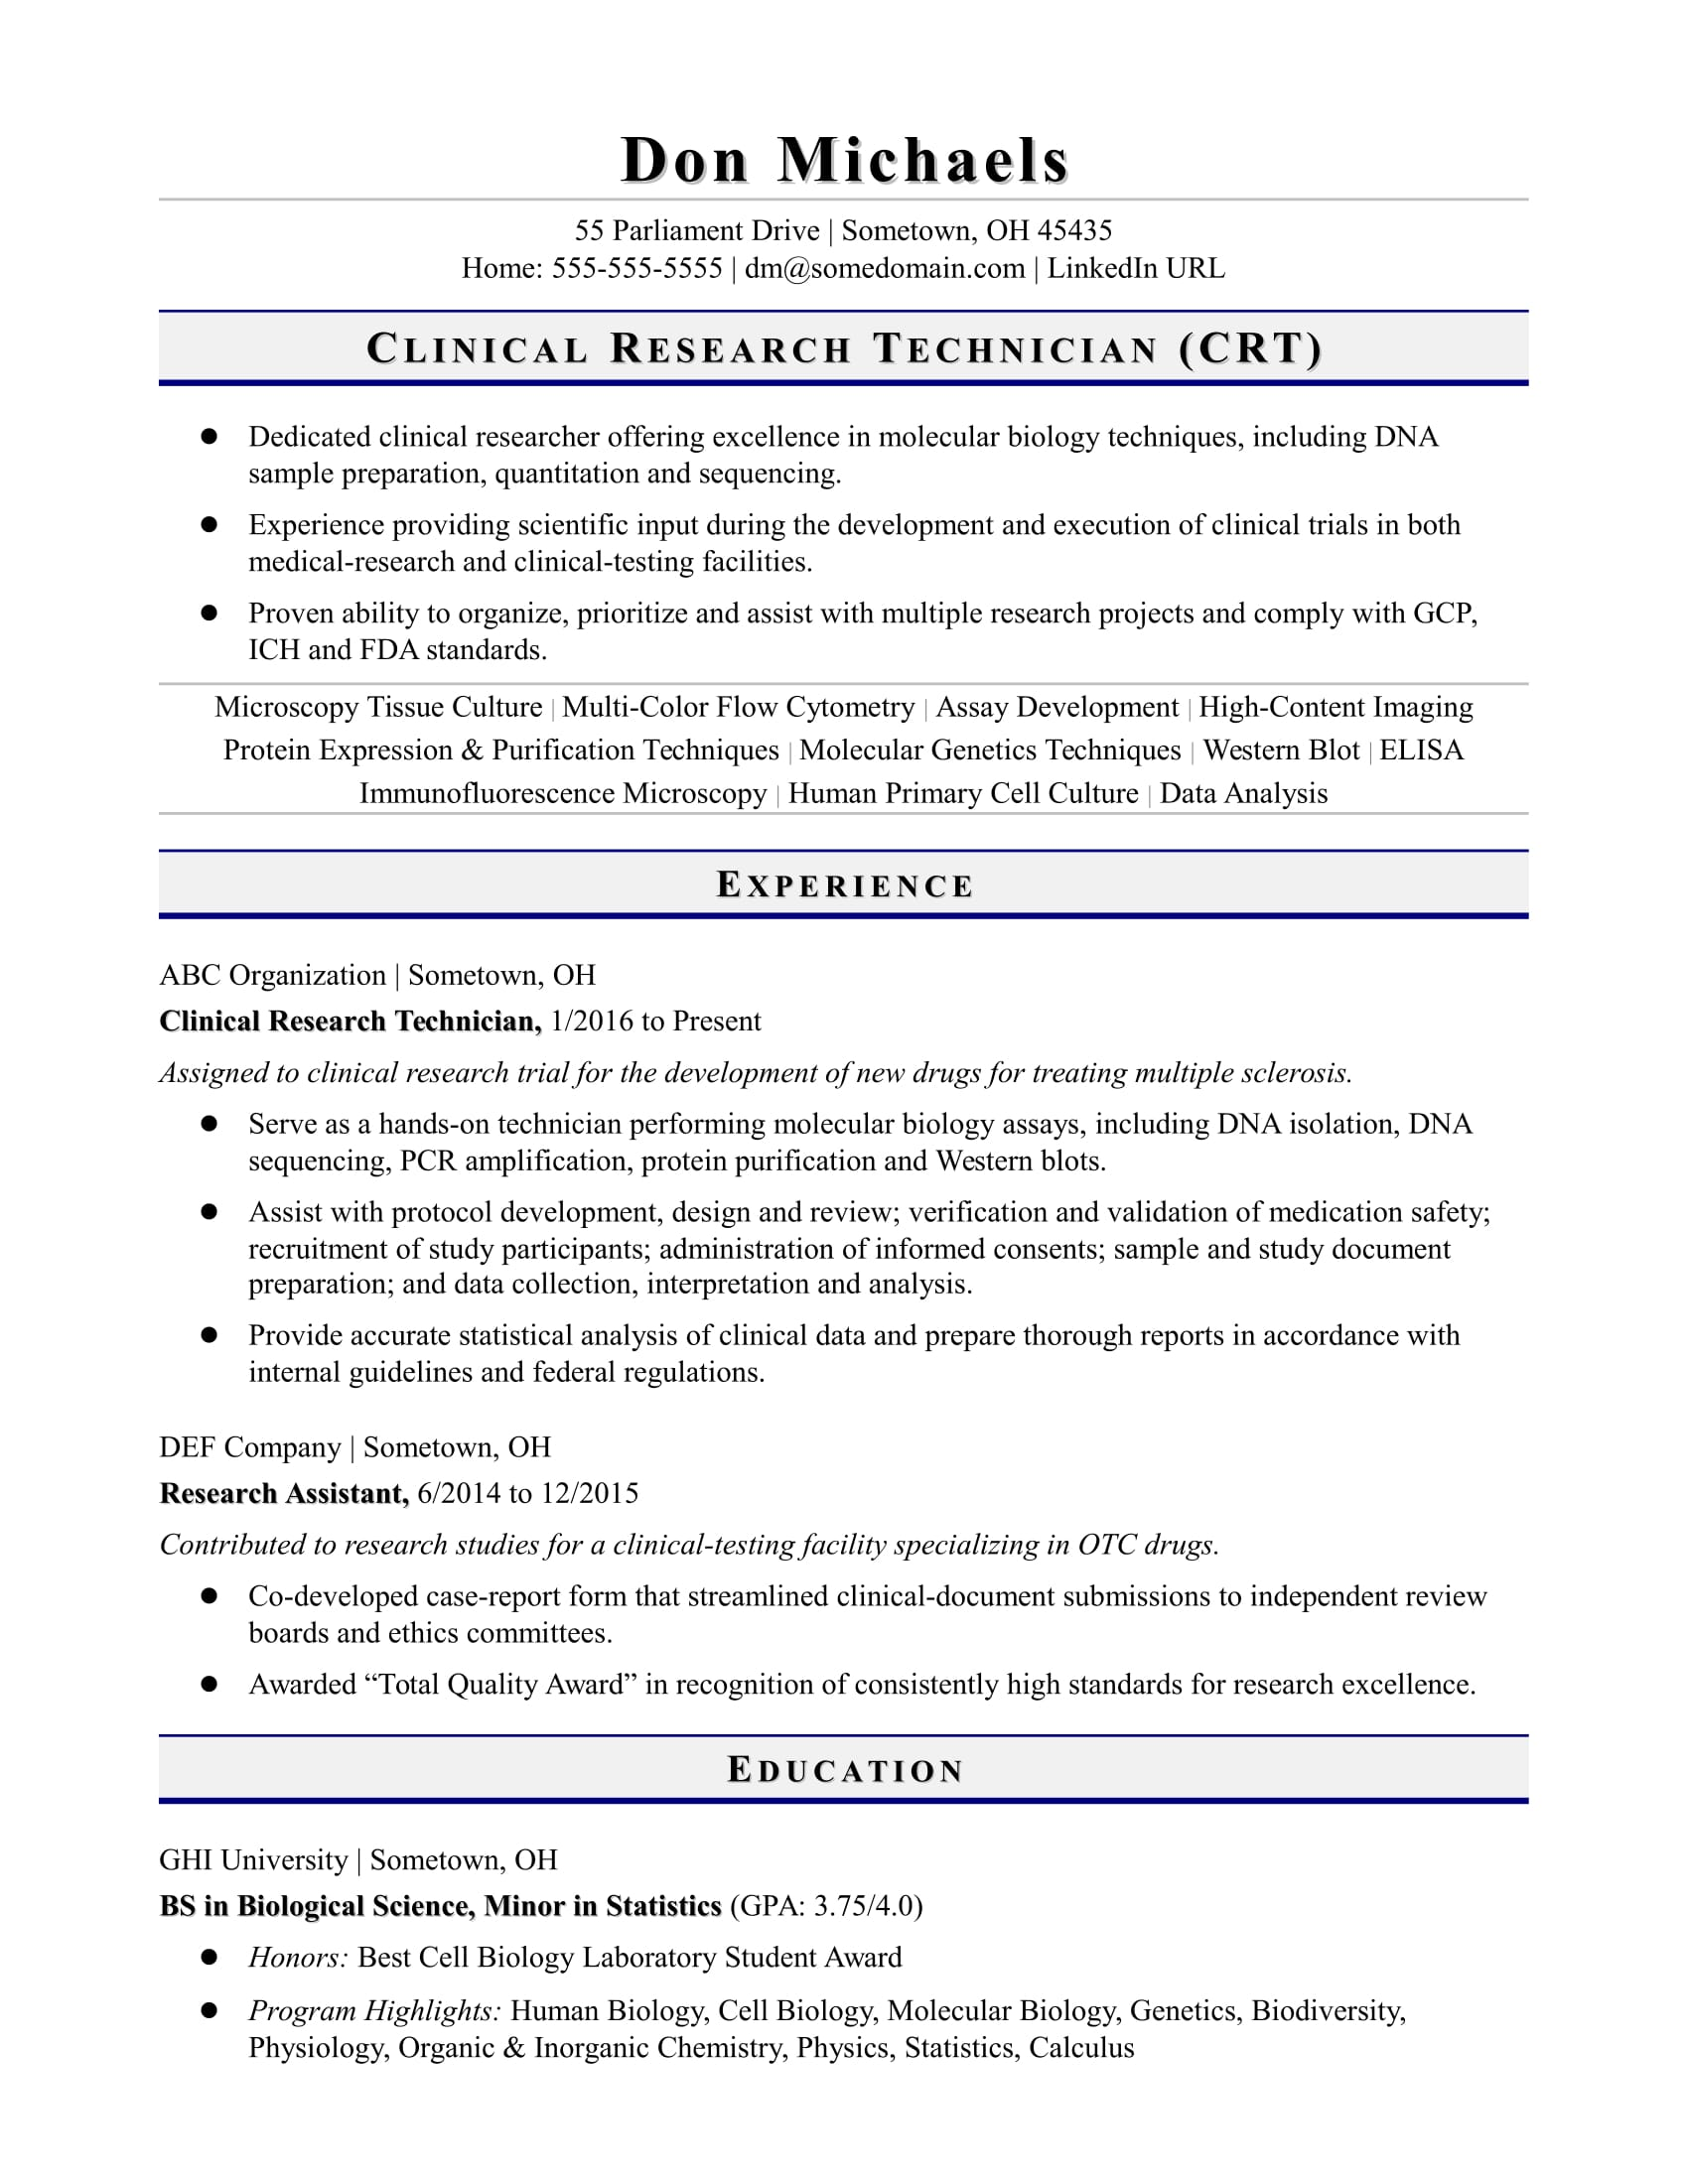 Delightful Sample Resume For An Entry Level Research Technician Throughout Entry Level Biology Resume